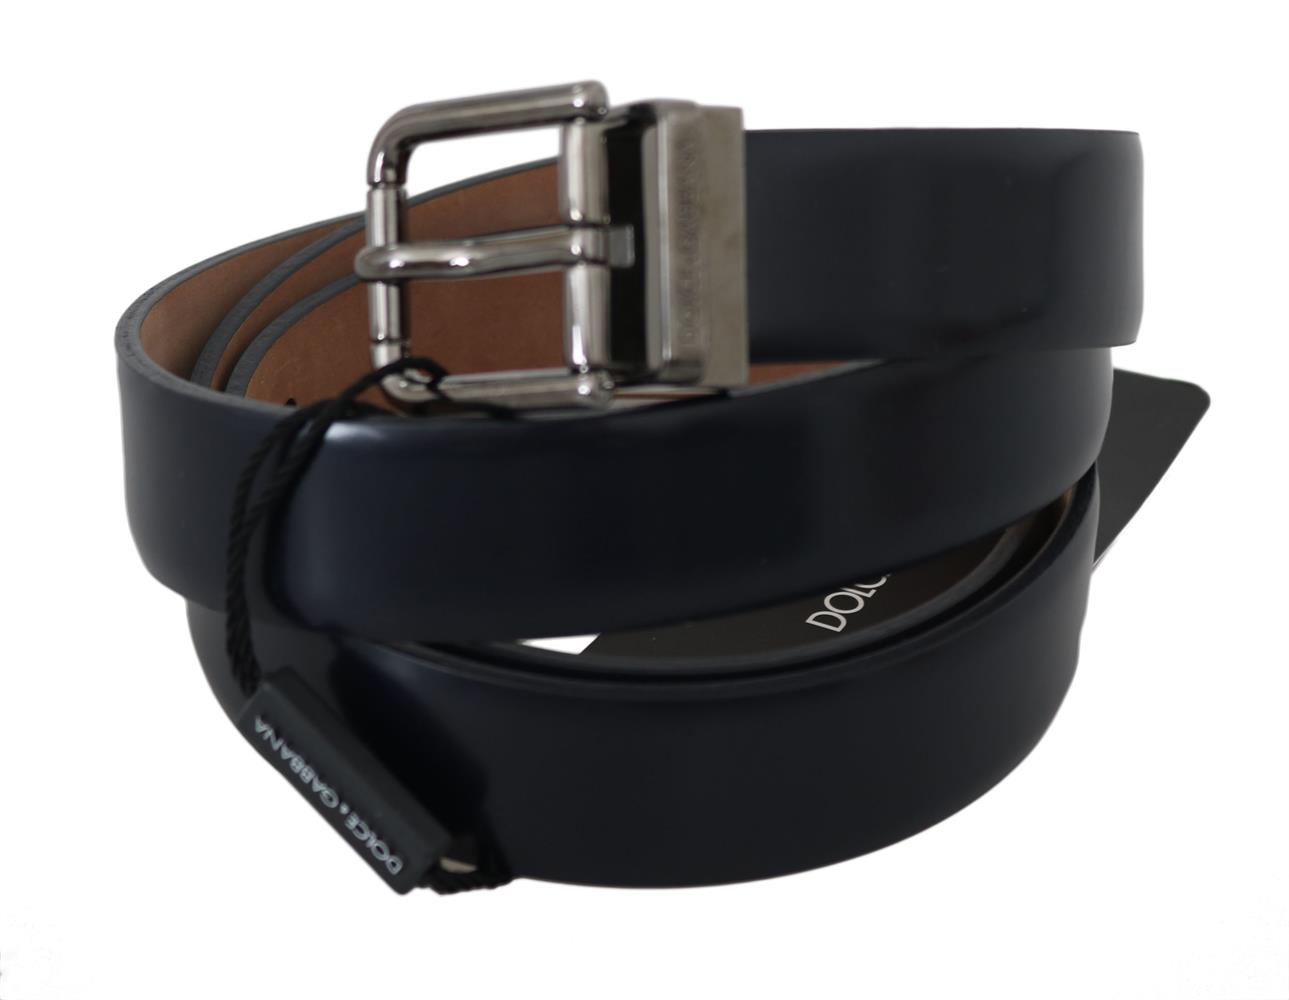 Dolce & Gabbana Blue Polished Engraved Silver Buckle Belt 105 cm / 42 Inches